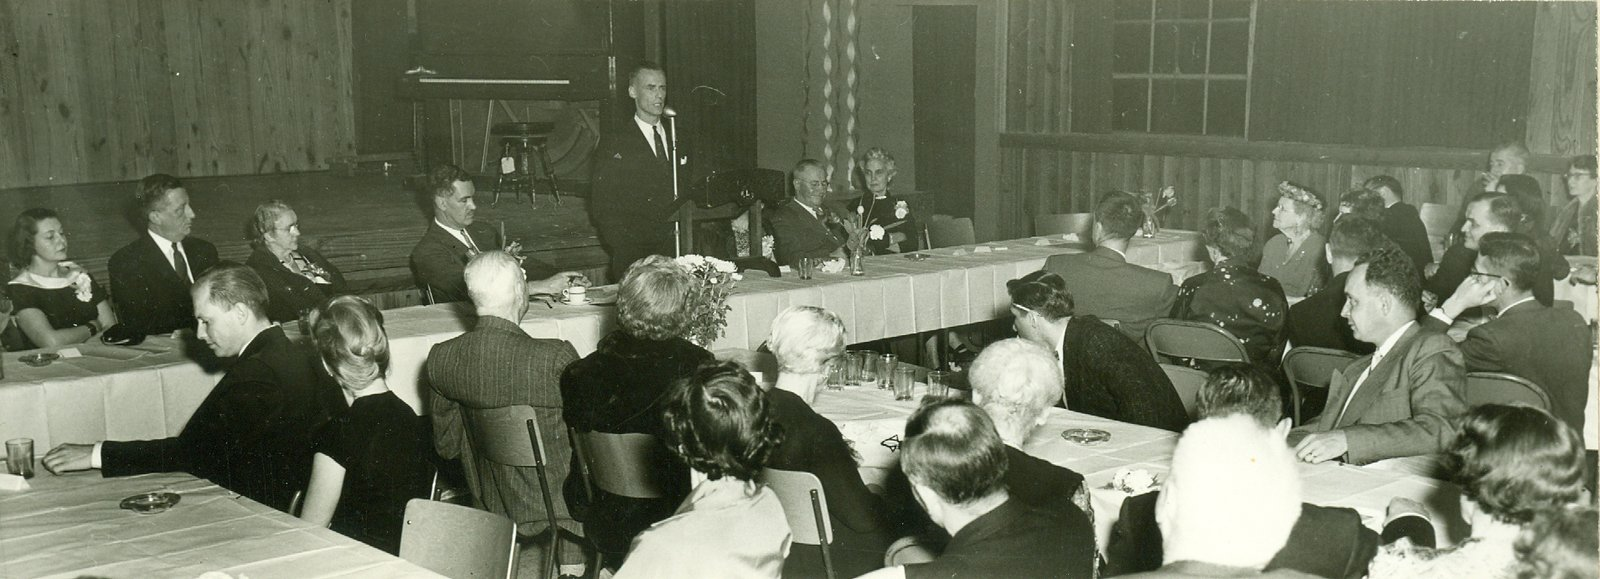 Banquet in the Pine Room